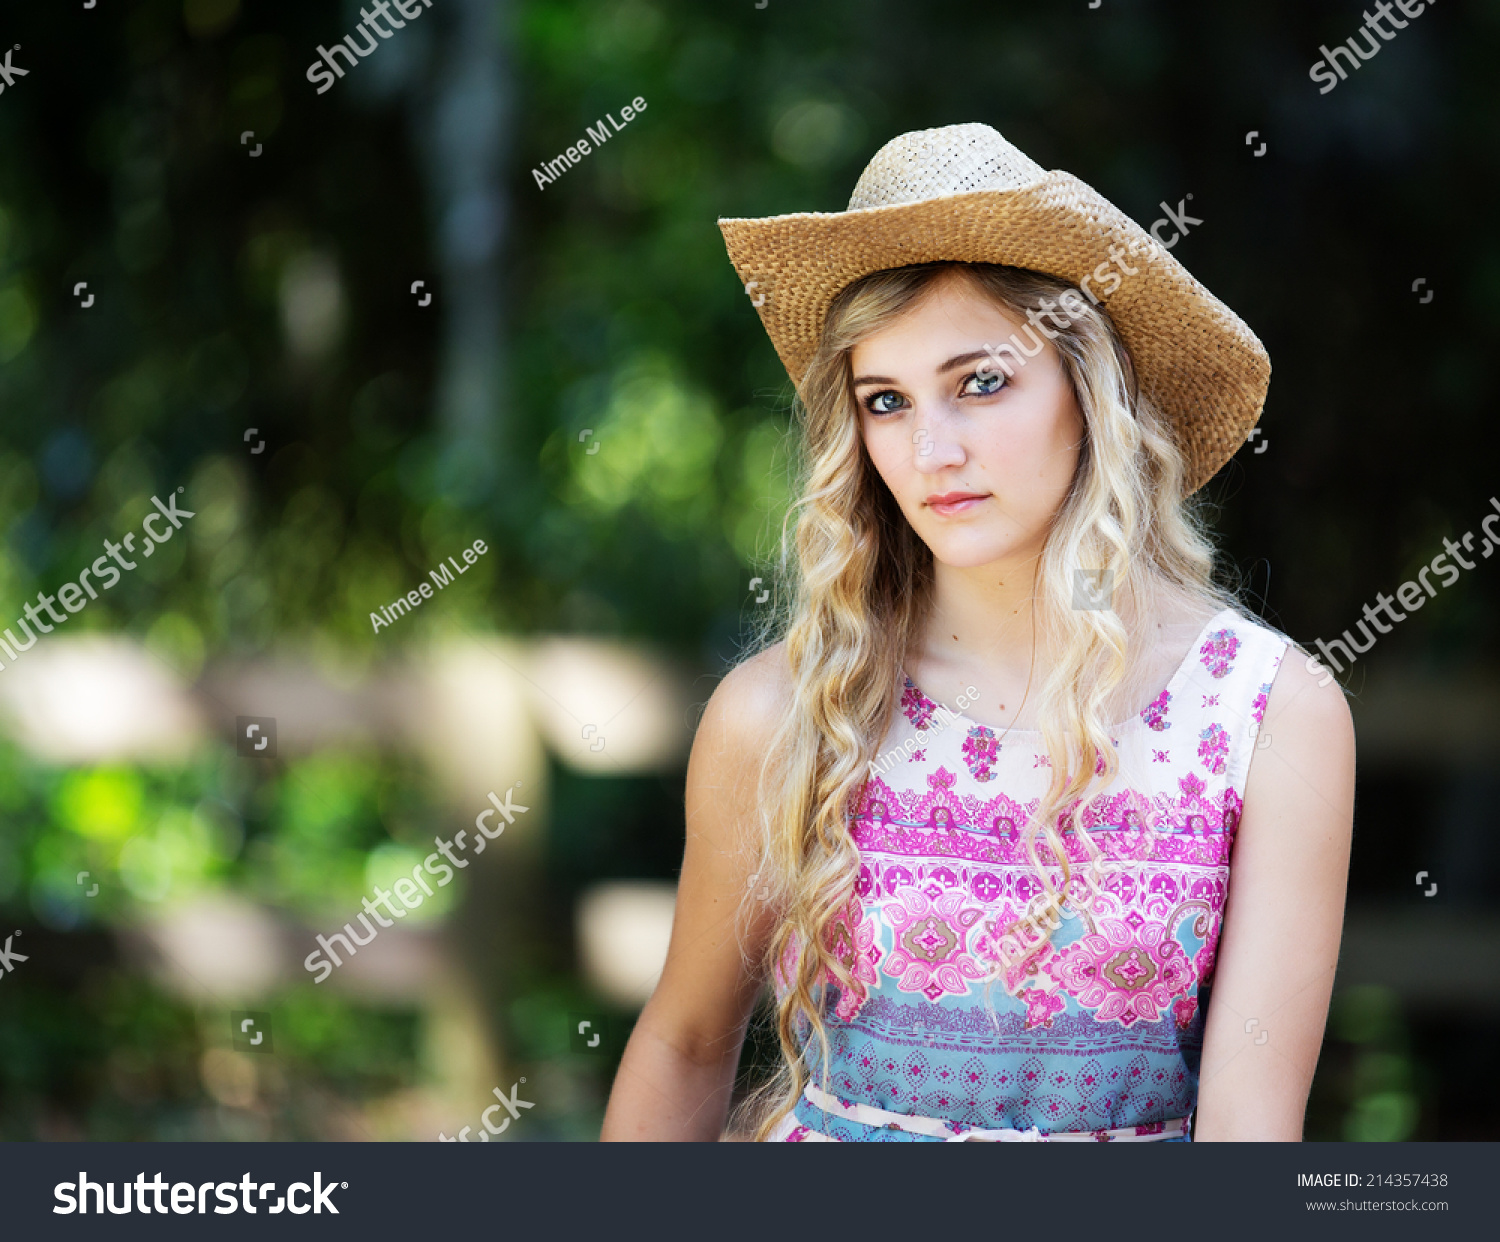 76ca597d639 Portrait of a beautiful country girl with curly blonde hair wearing a cowboy  hat and a